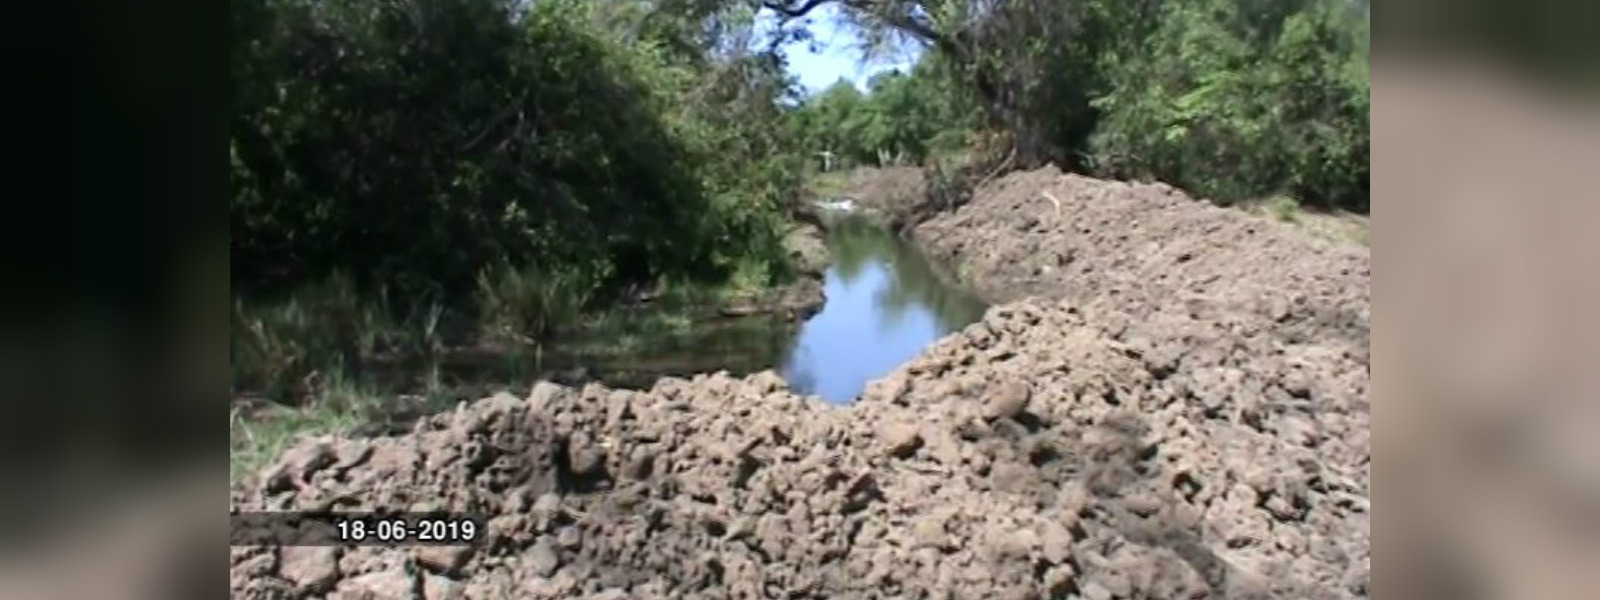 Farmers building unauthorized canal through Somawathi National Park